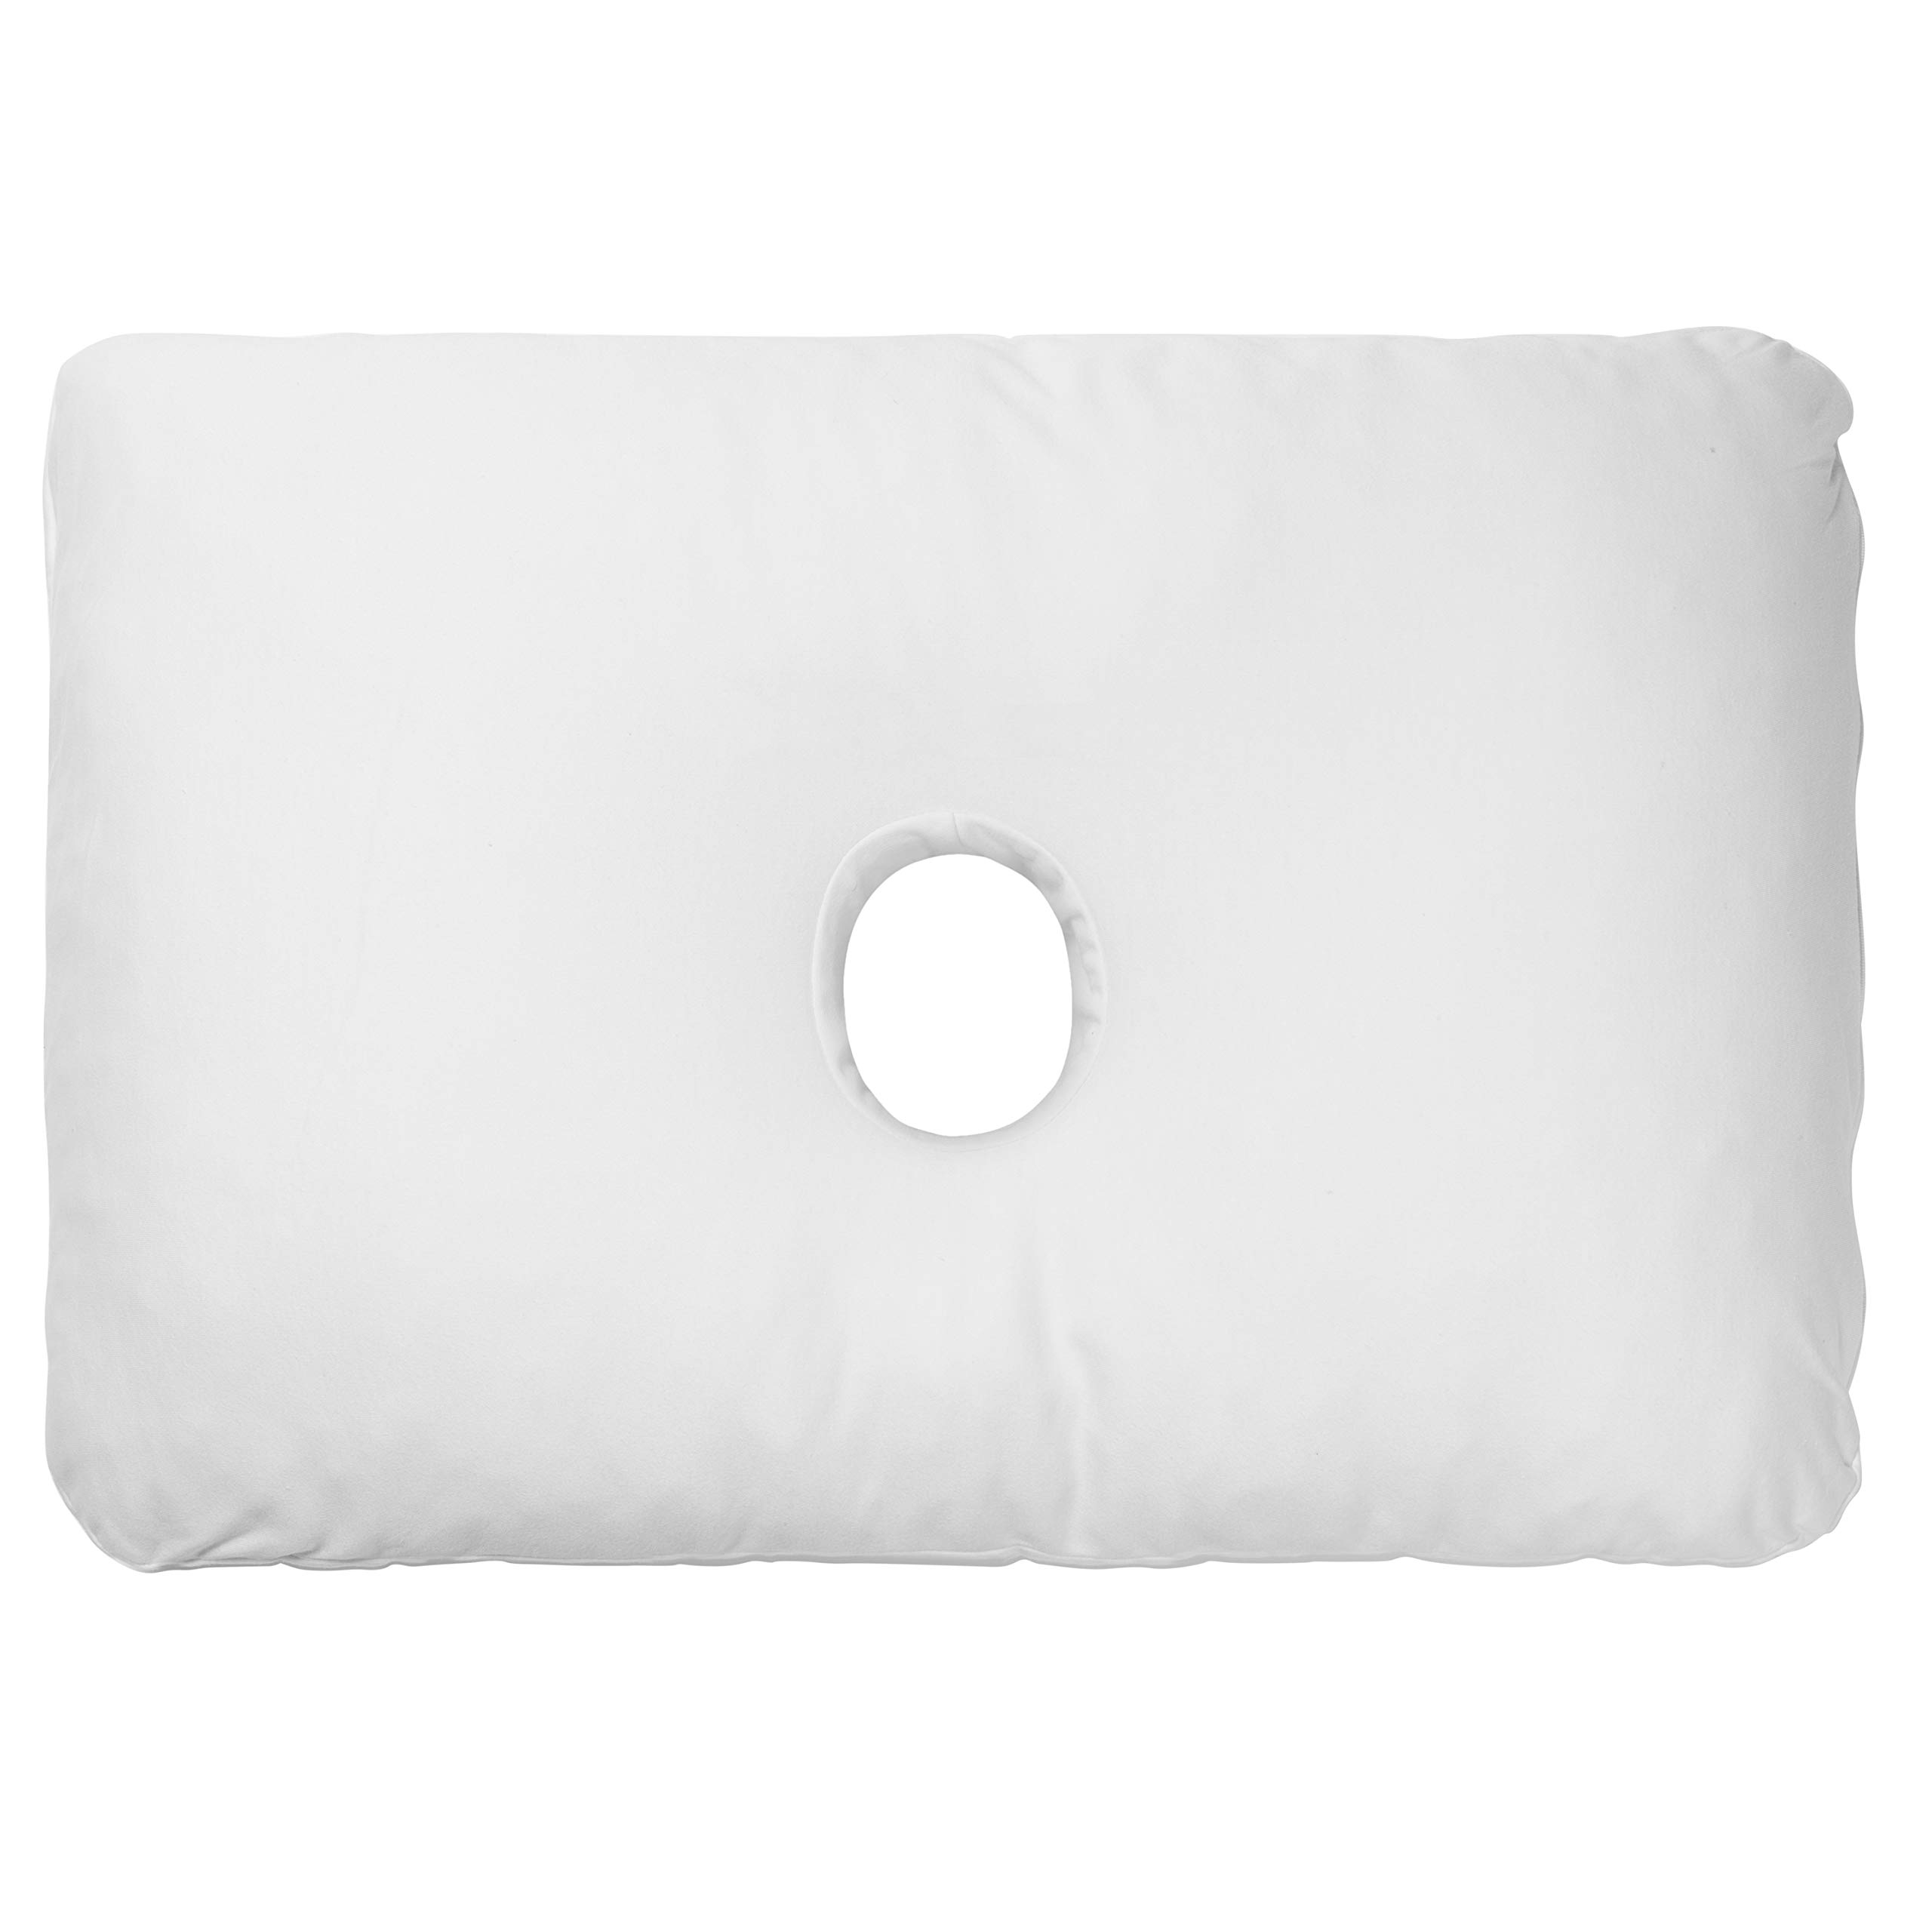 PureComfort - Pillow with an Ear Hole | CNH & Ear Pain Pillow | Adjustable | CertiPUR-US Premium Memory Foam Fill | 5Yr Warranty | 100 Night Trial by PureComfort